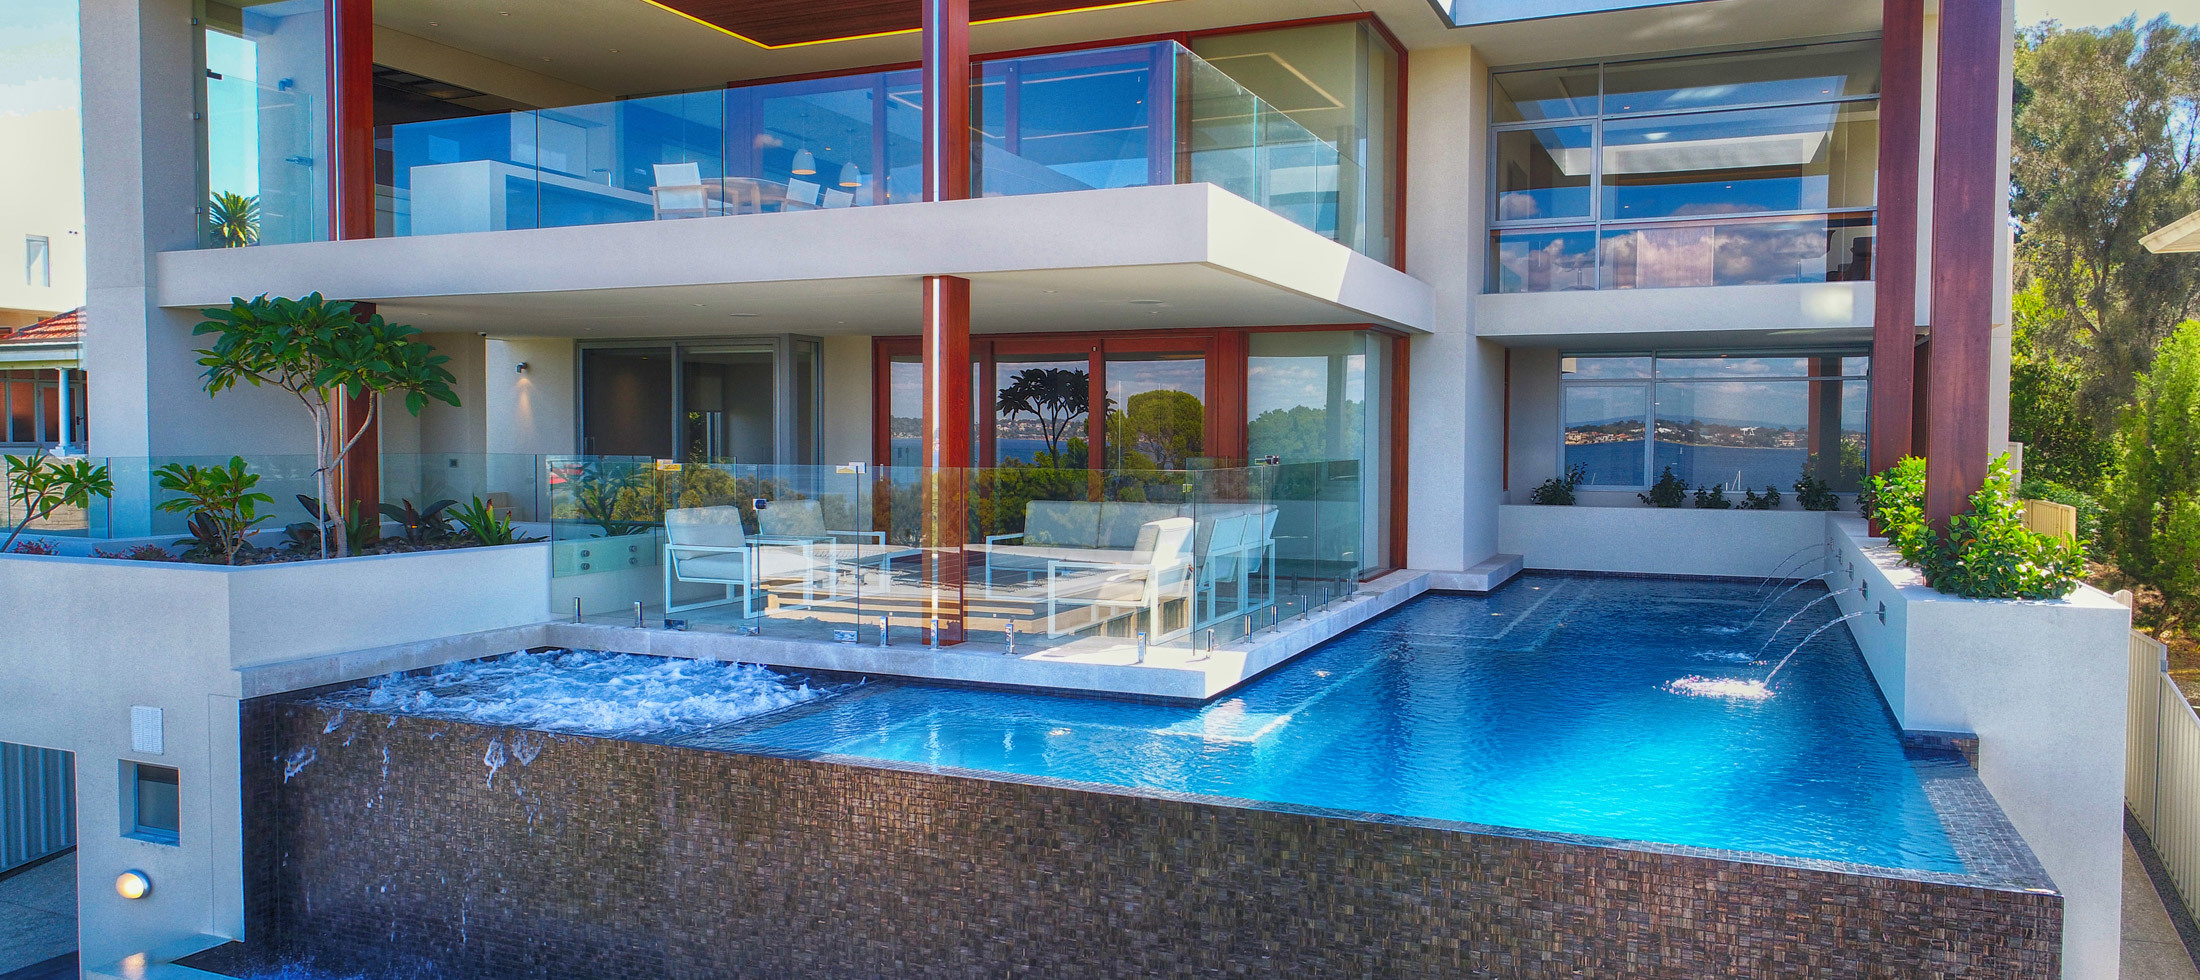 SPASA WA Pool Spa & Outdoor Living Expo - Perth on Outdoor Living Spa id=88026